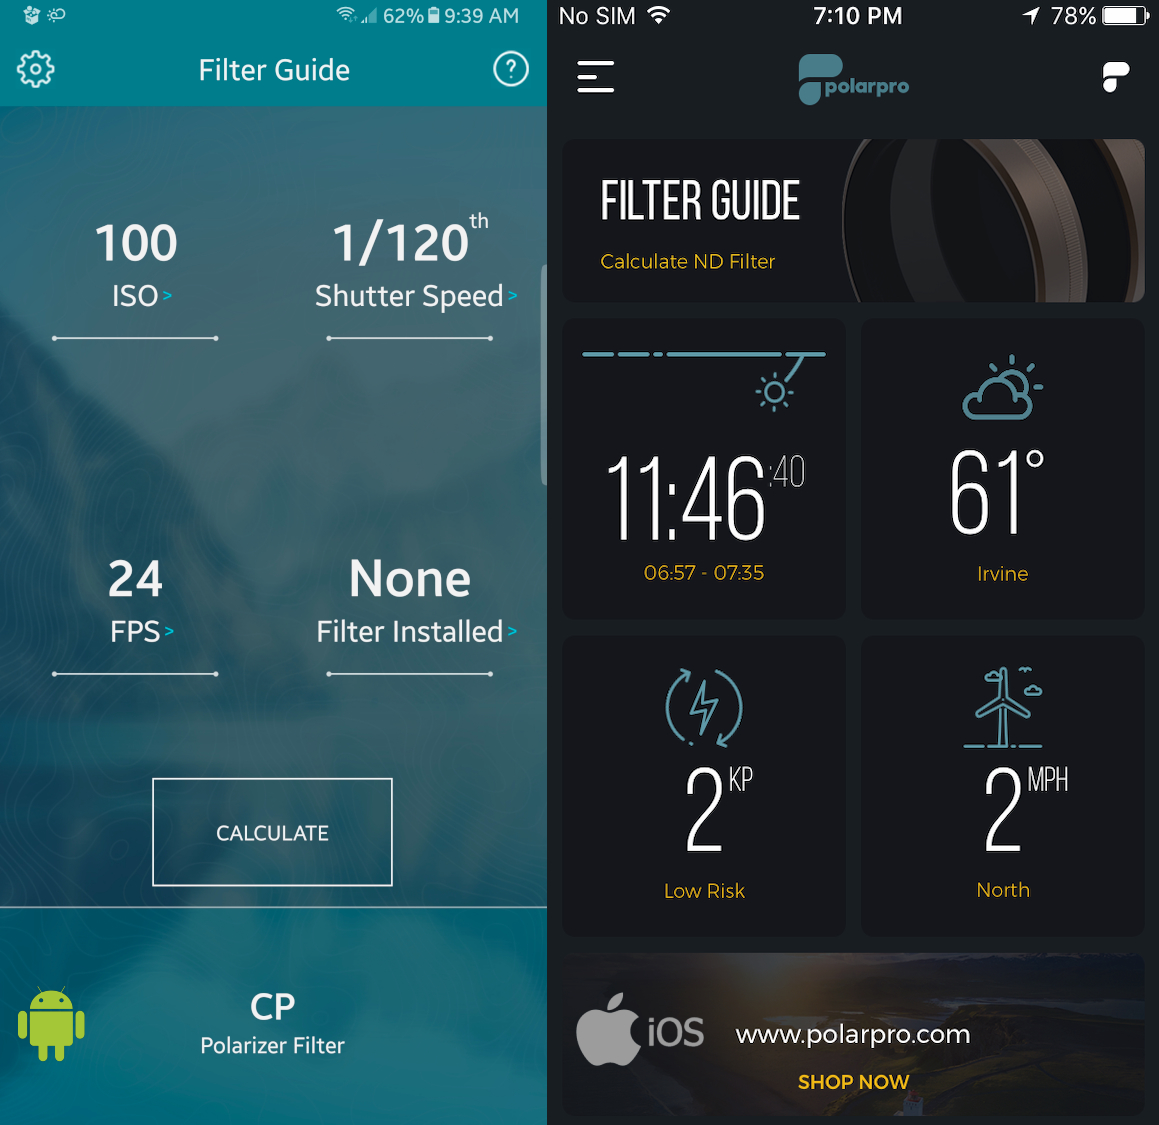 Free Polarpro App Calculates Nd Filters And More